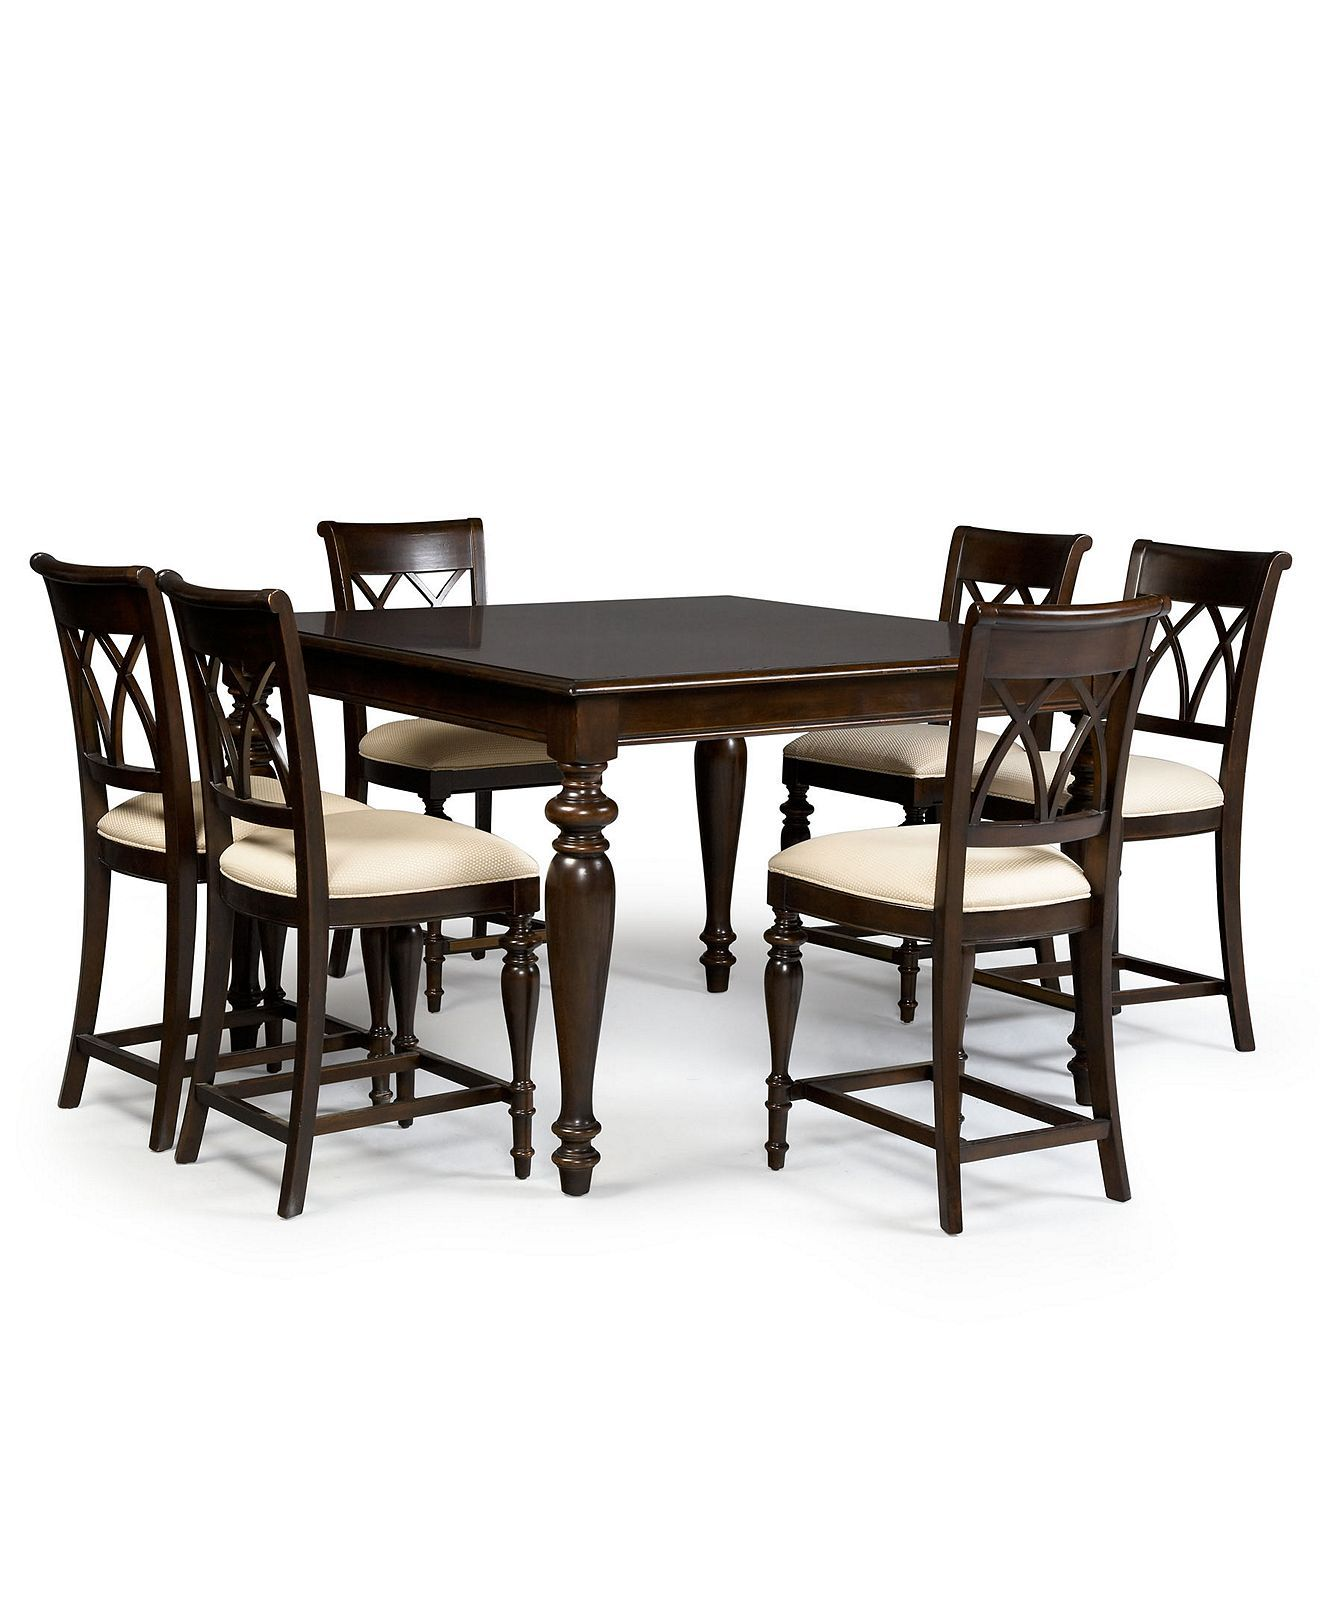 B 1700 Bradford Dining Room Furniture 9 Piece Gathering Set Table And 8 Chairs Dining Room Furniture Country Dining Tables Modern Dining Chairs